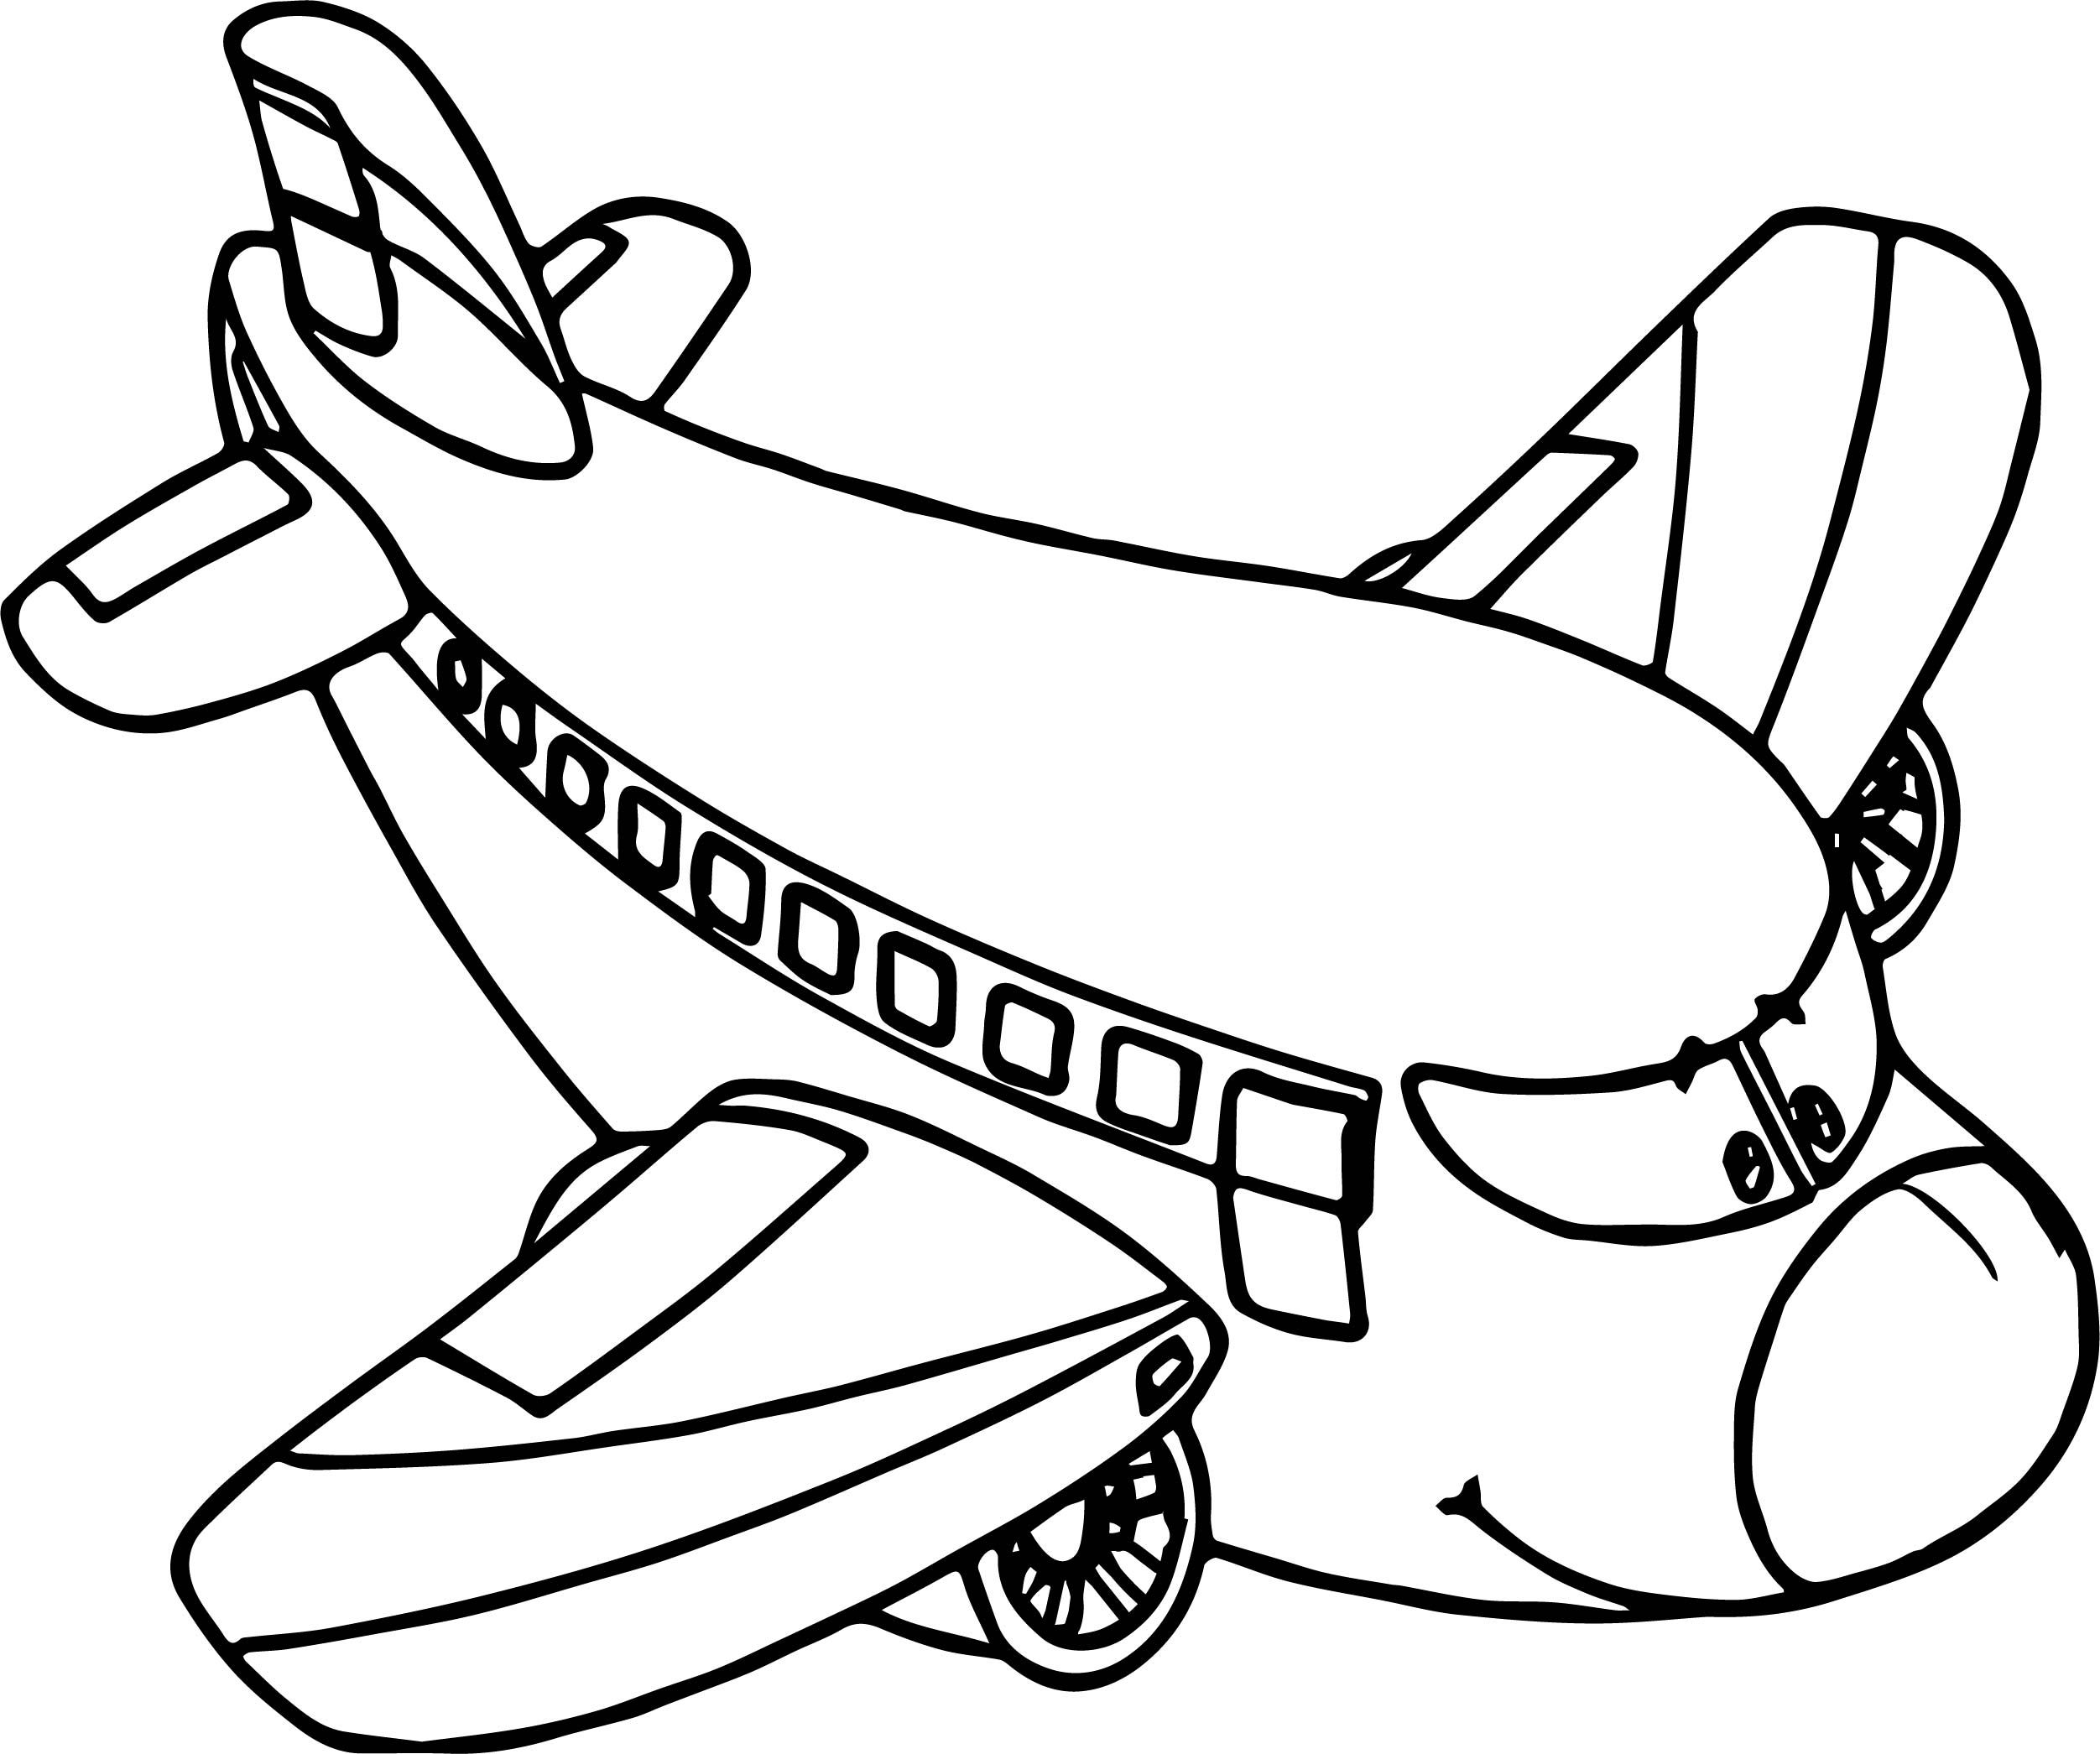 Awesome Airplane Cartoon Coloring Page Airplane Coloring Pages